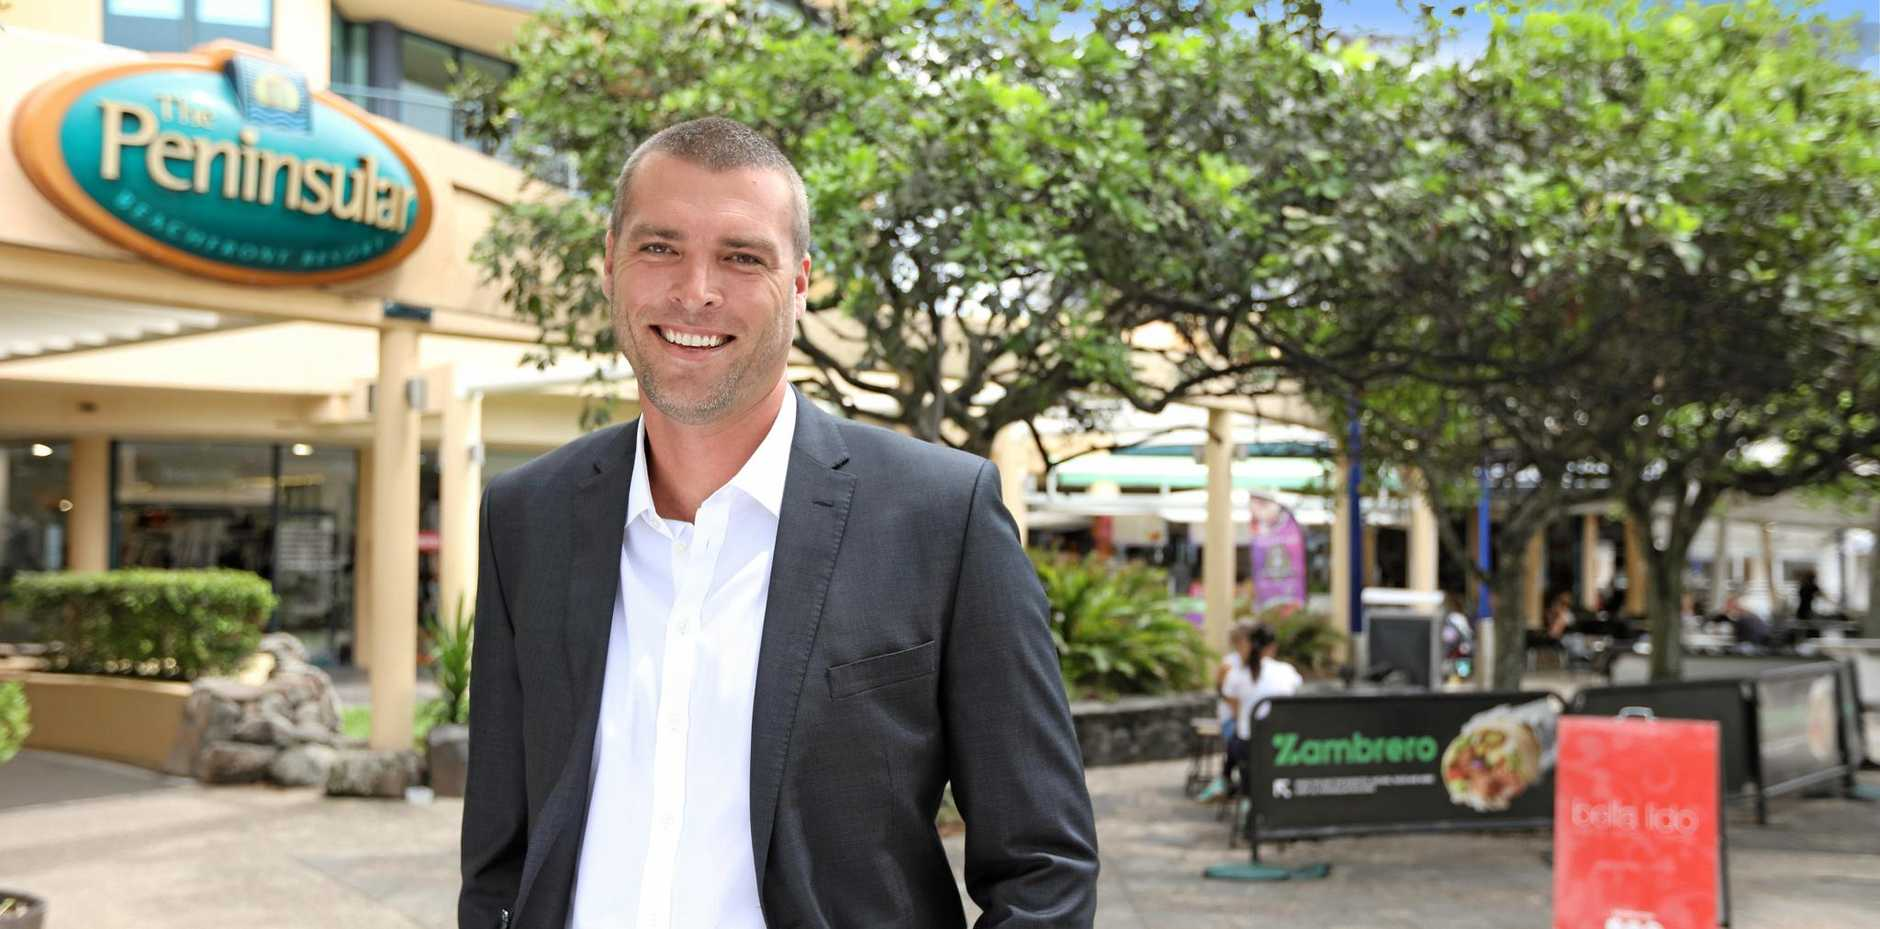 IN DEMAND: Ryan Parry of CBRE Sunshine Coast on site at the Peninsular Resort Mooloolaba that has seen $7.77million in transactions in the past 13 months.